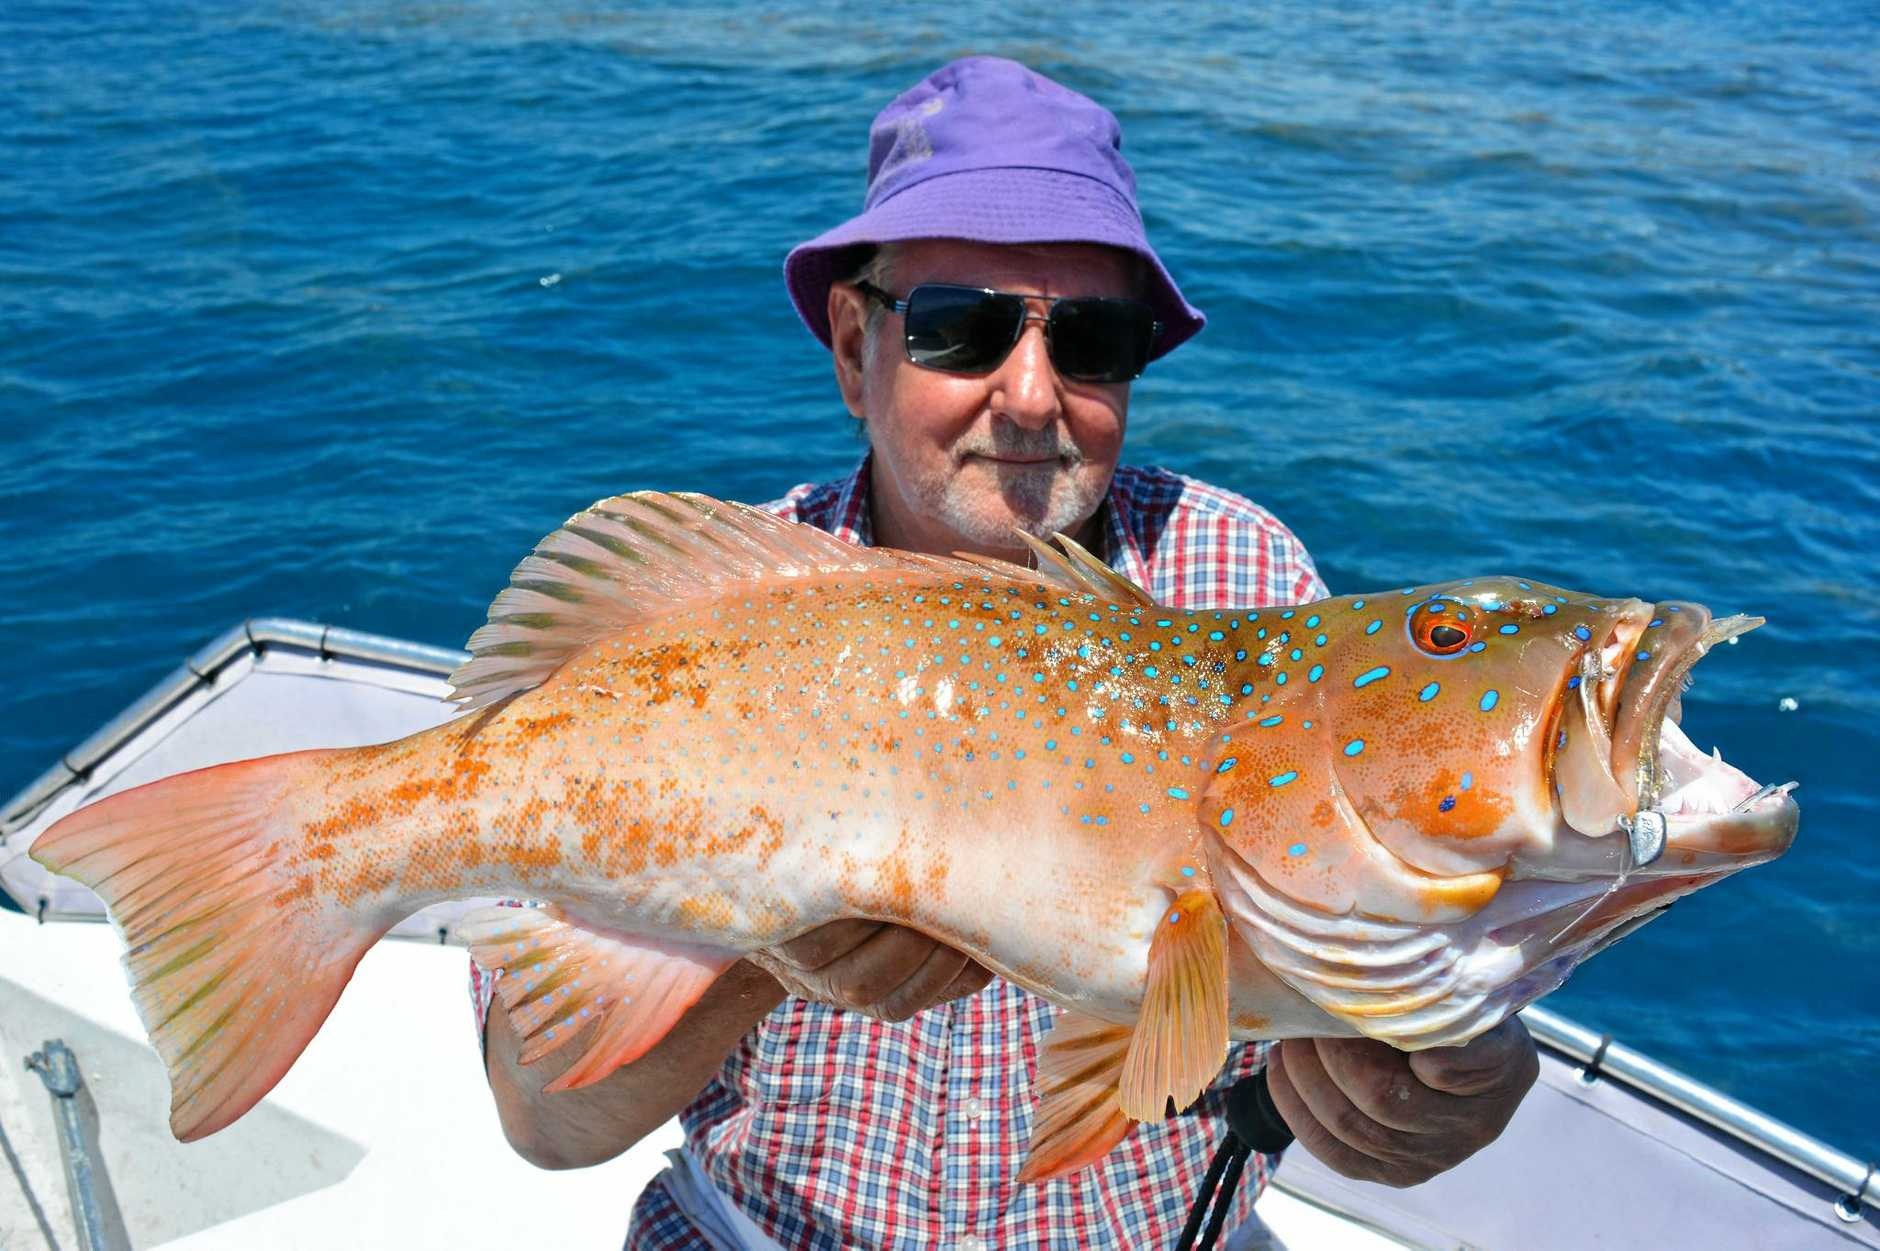 TROUT ABOUT: Proserpine retired chef Mark Christian holding a fat trout.